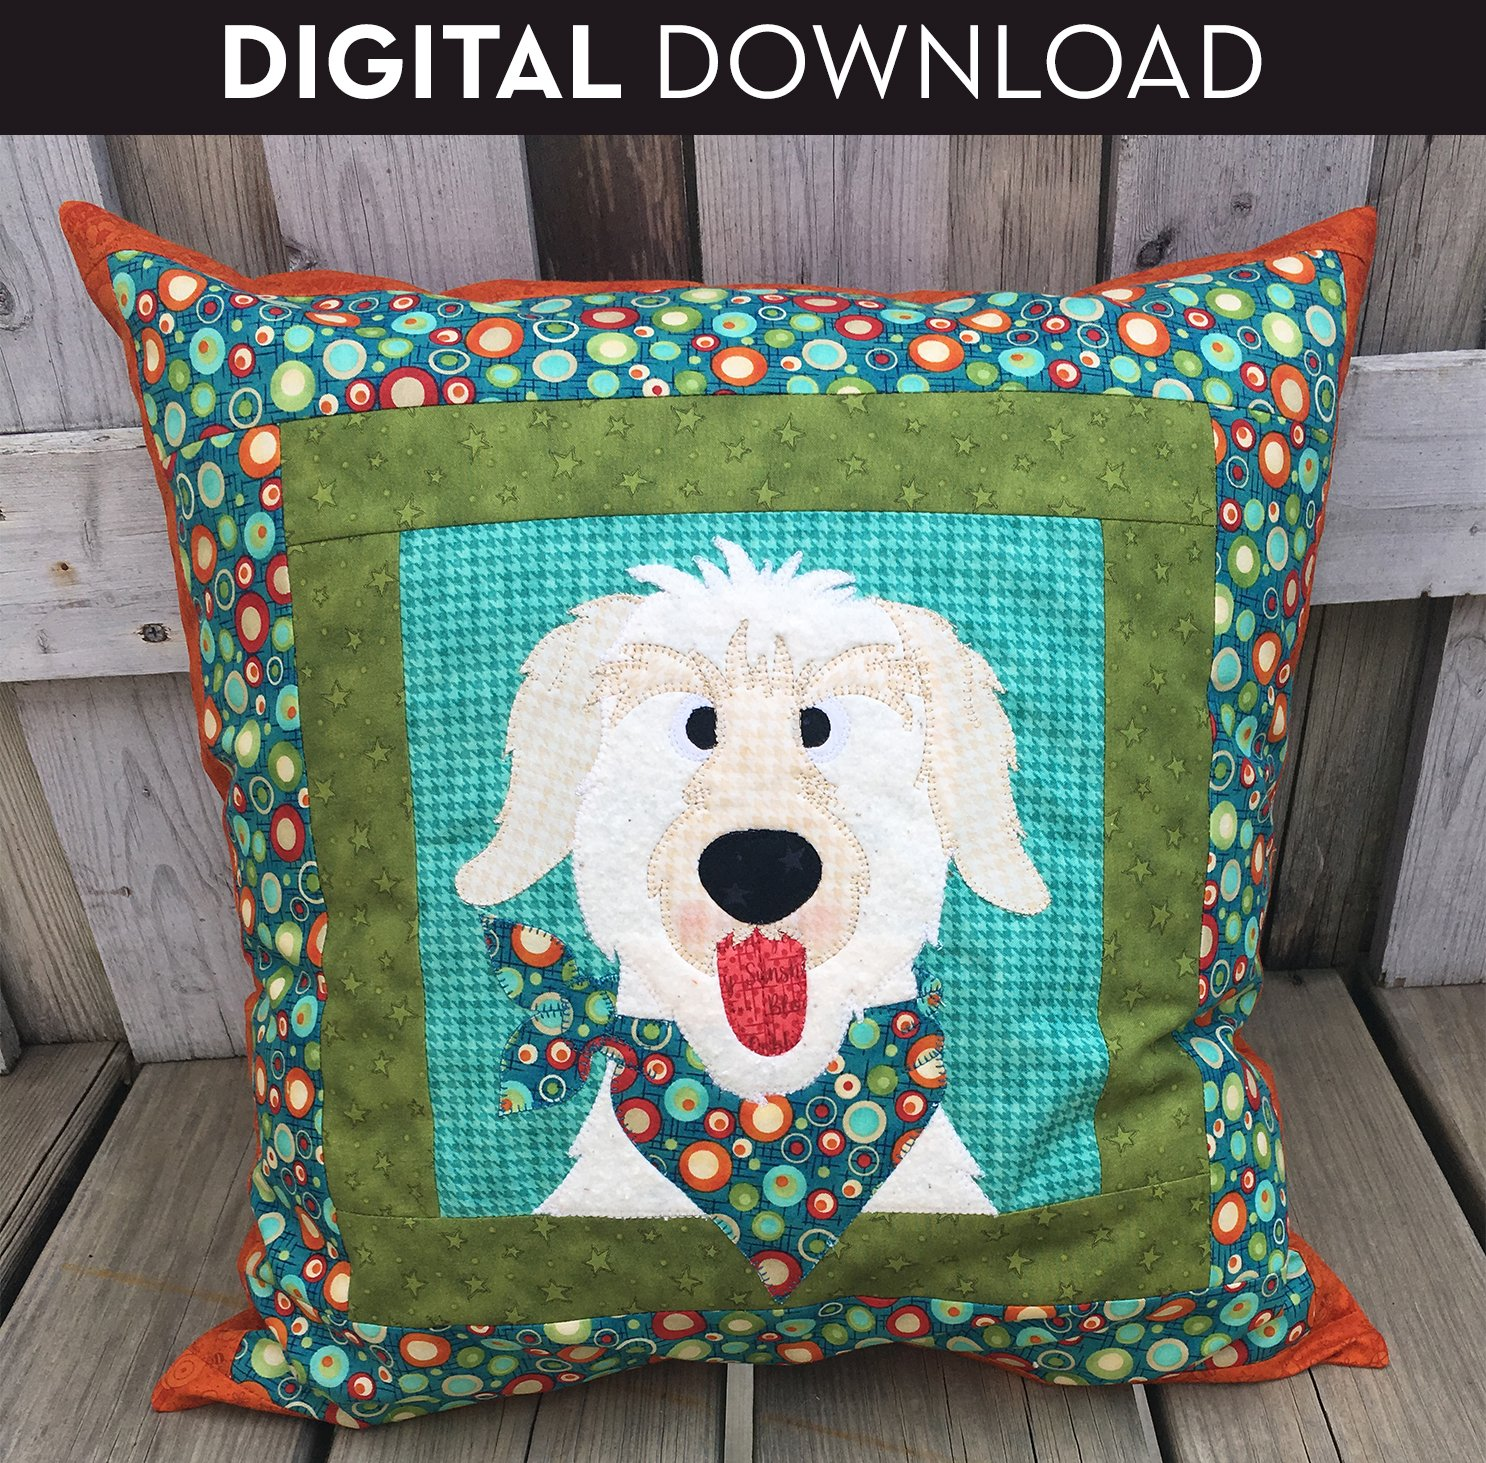 Dog Pillow - Download (Applique not included)